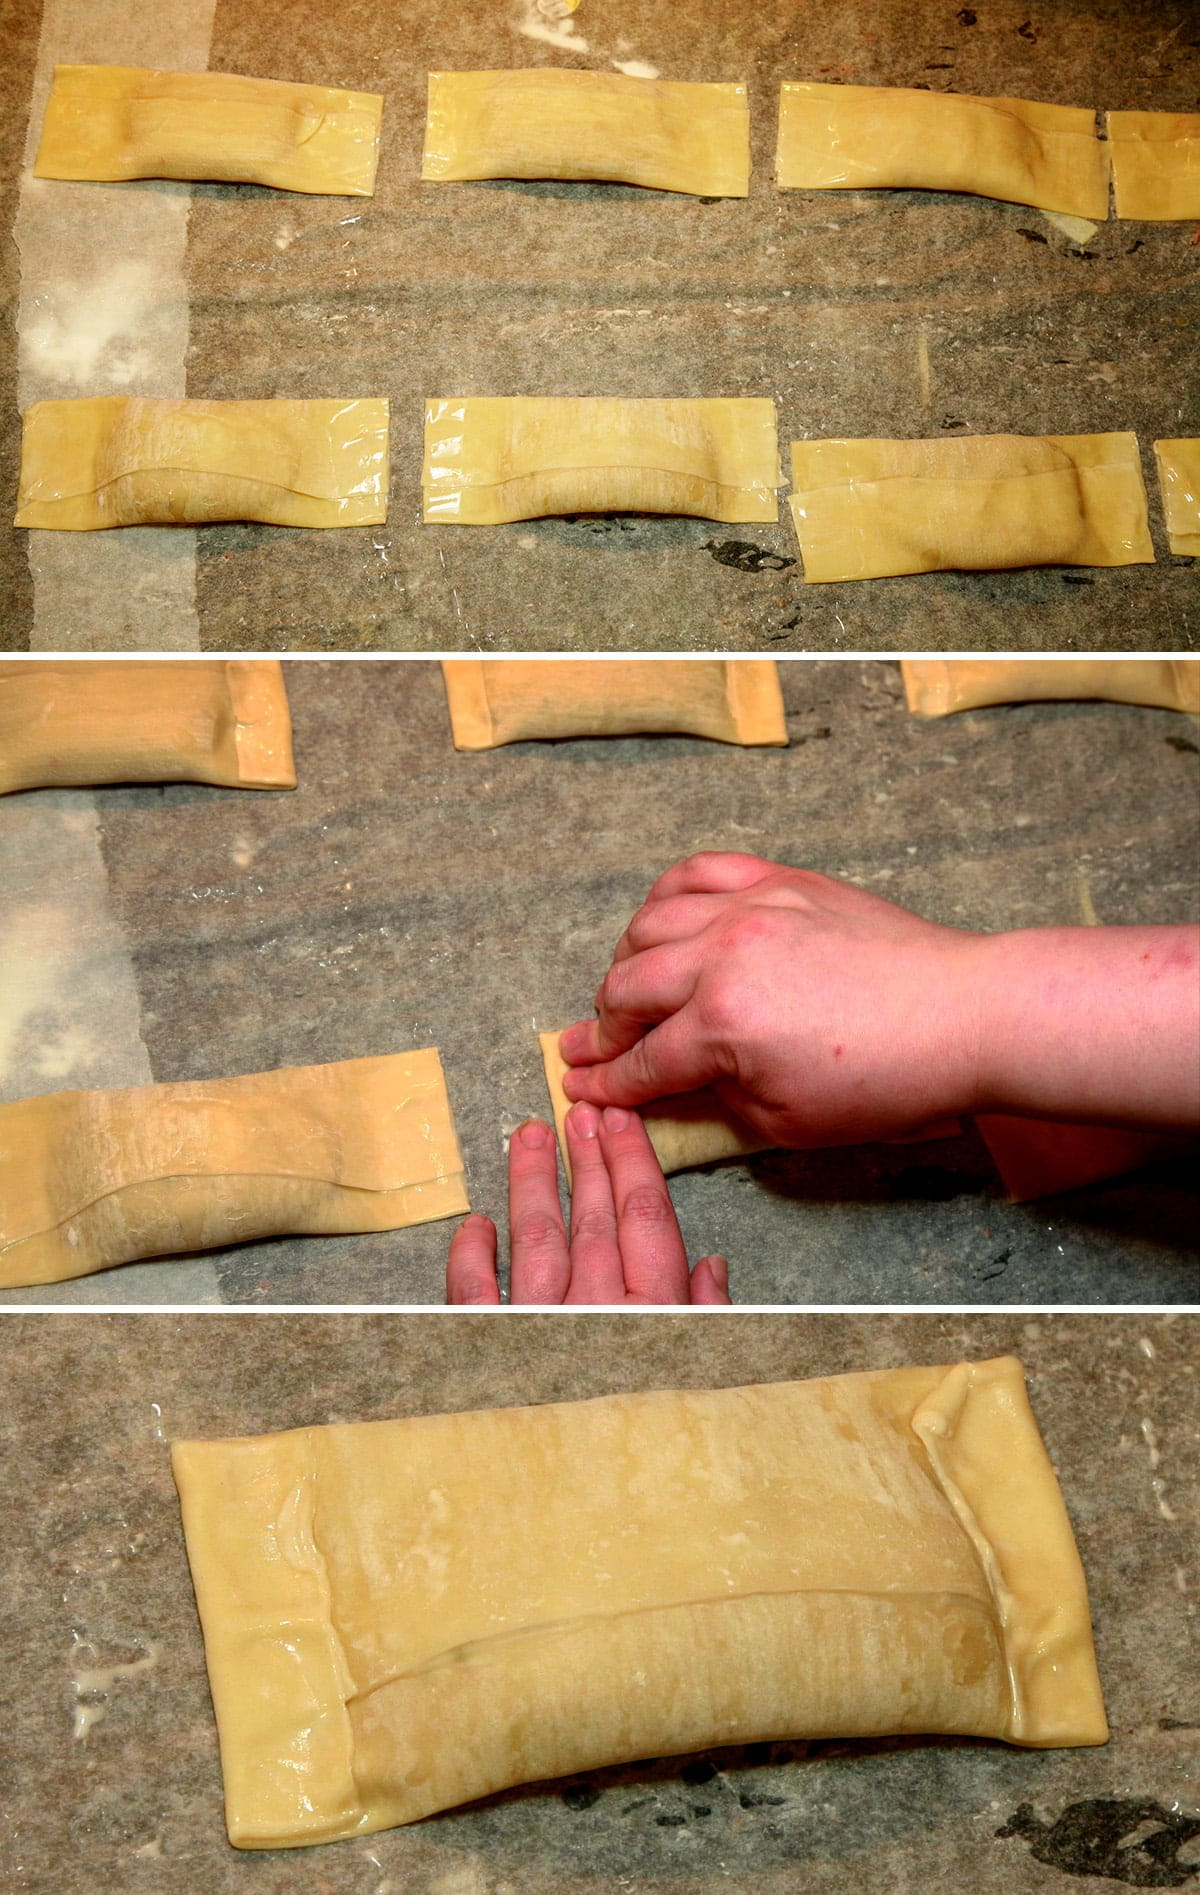 A compilation of 3 images, demonstrating folding over the ends of the egg rolls.